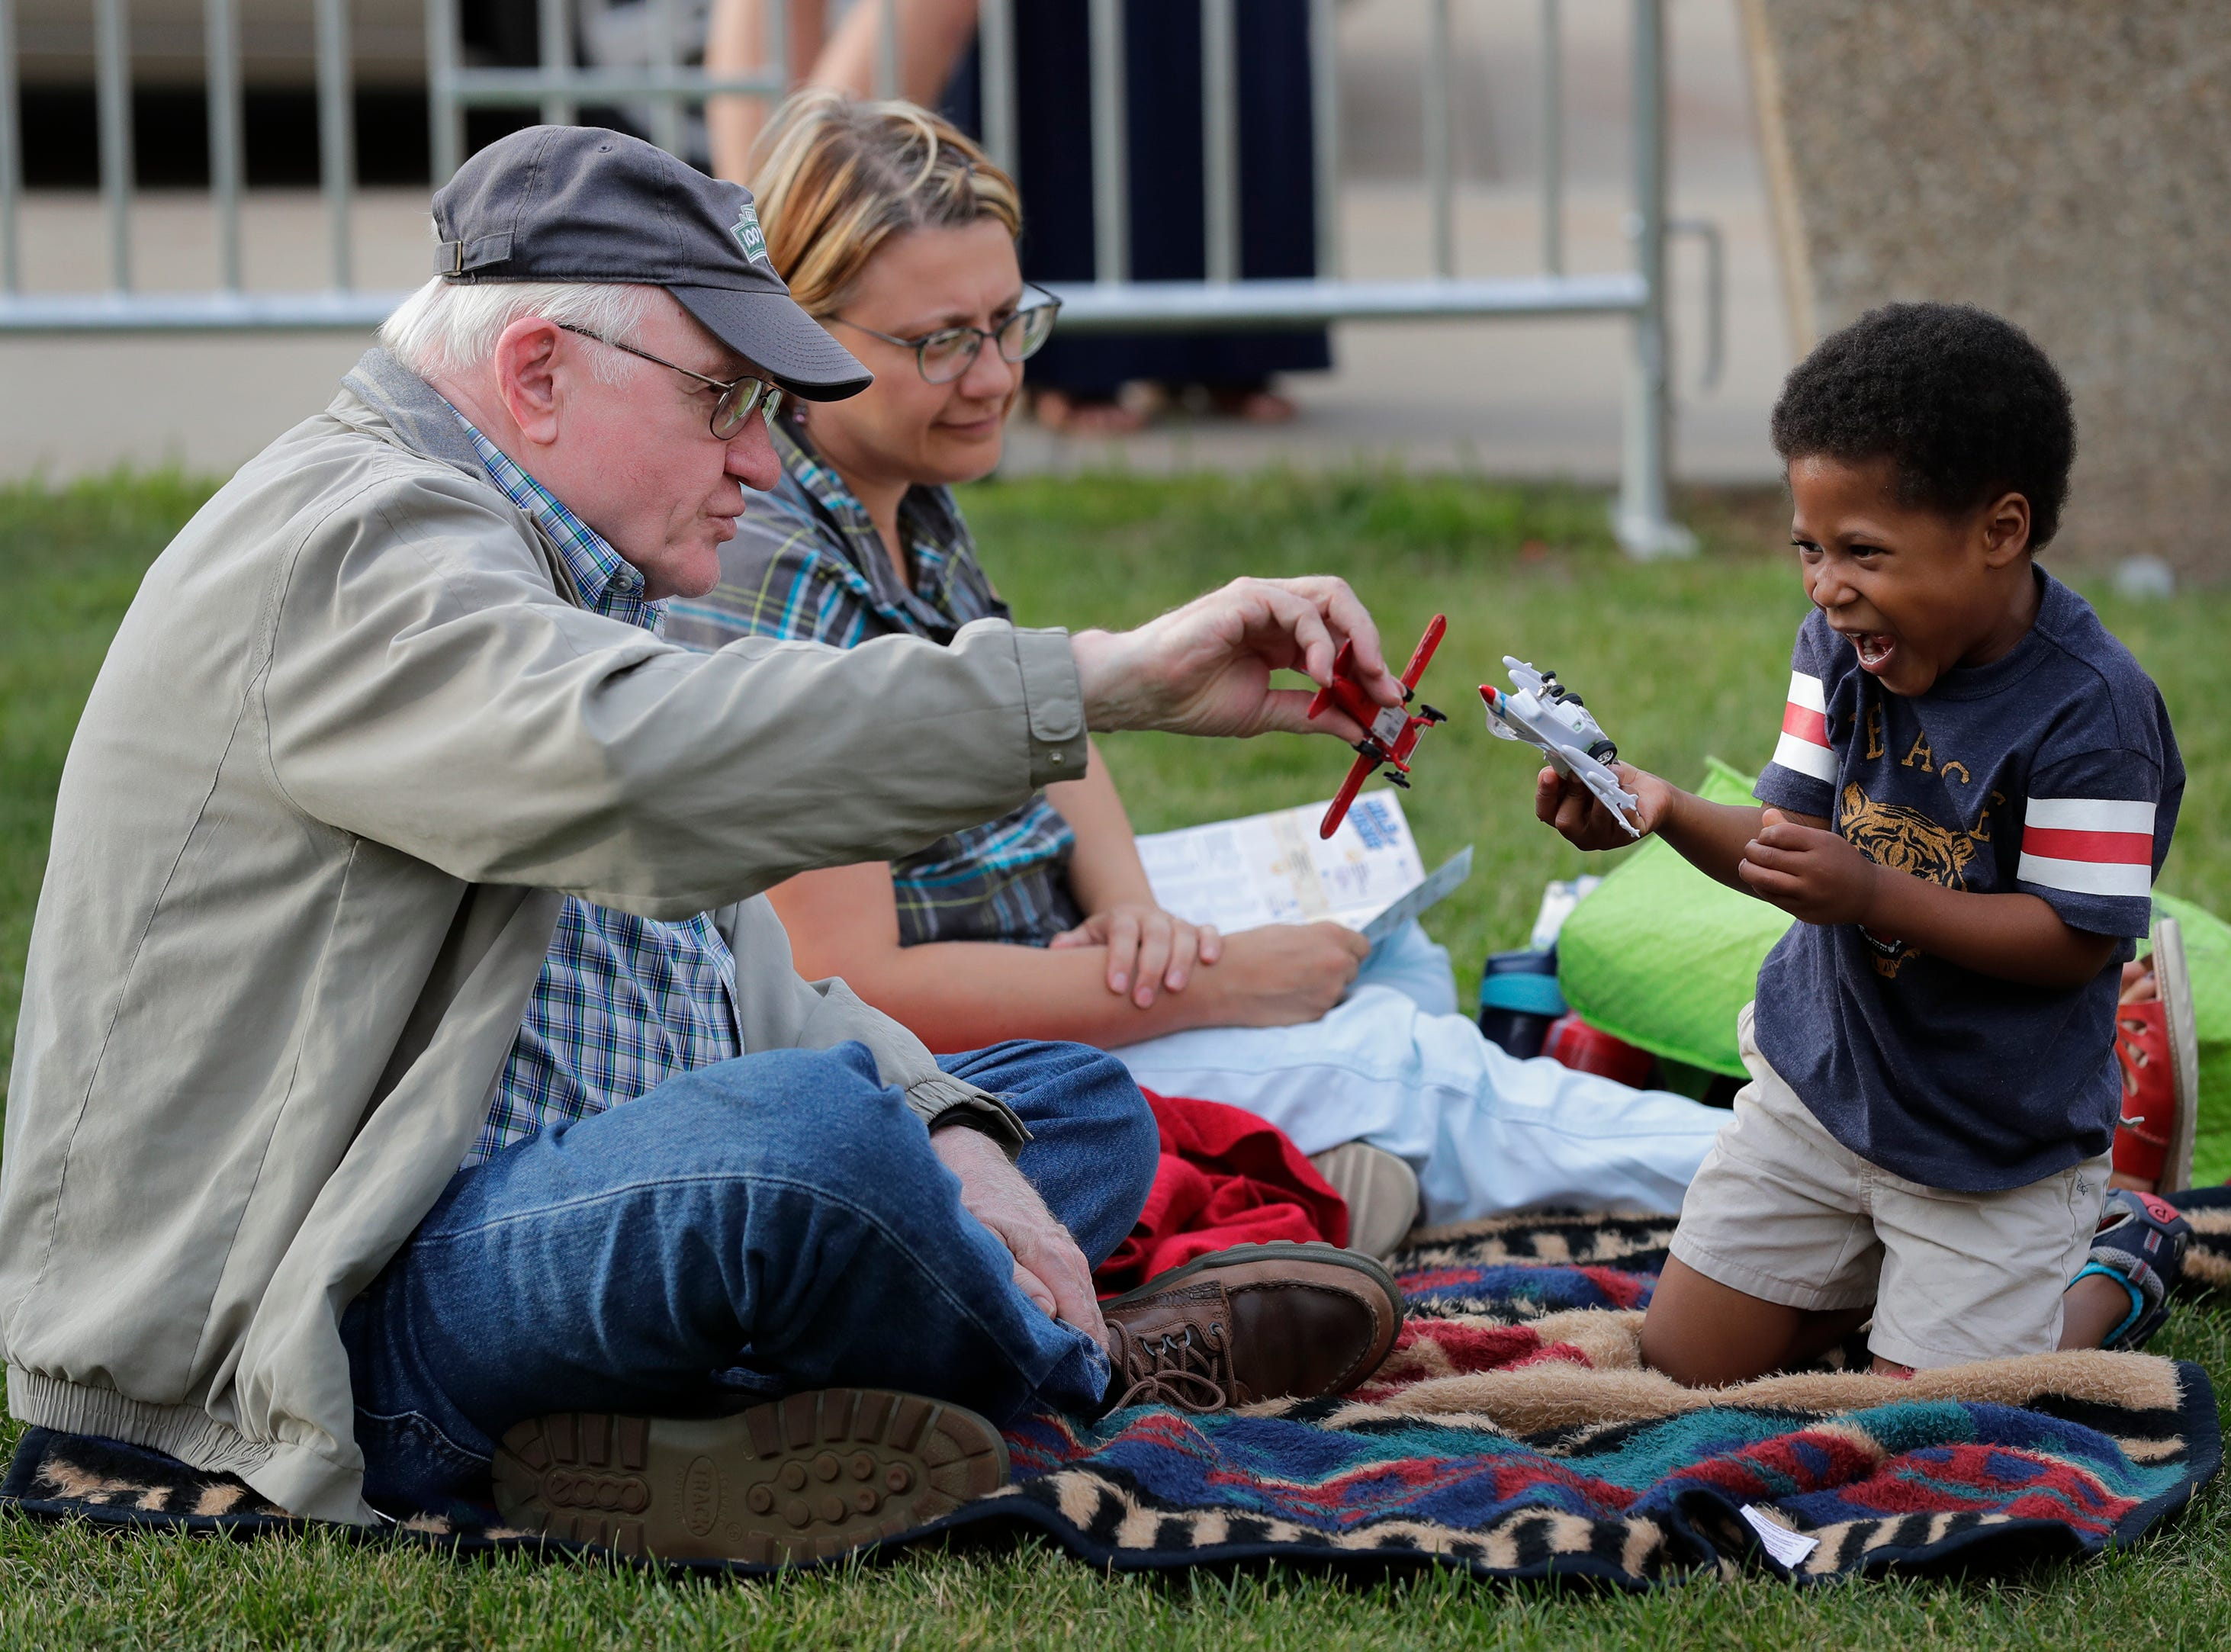 Don Feldkamp, left, of Appleton plays with his grandson Aiden Feldkamp, 4, while waiting for the start of a concert at Washington Square during the Mile of Music Friday, August 3, 2018, in Appleton, Wis.  In back is Aiden's mother Diane Feldkamp.